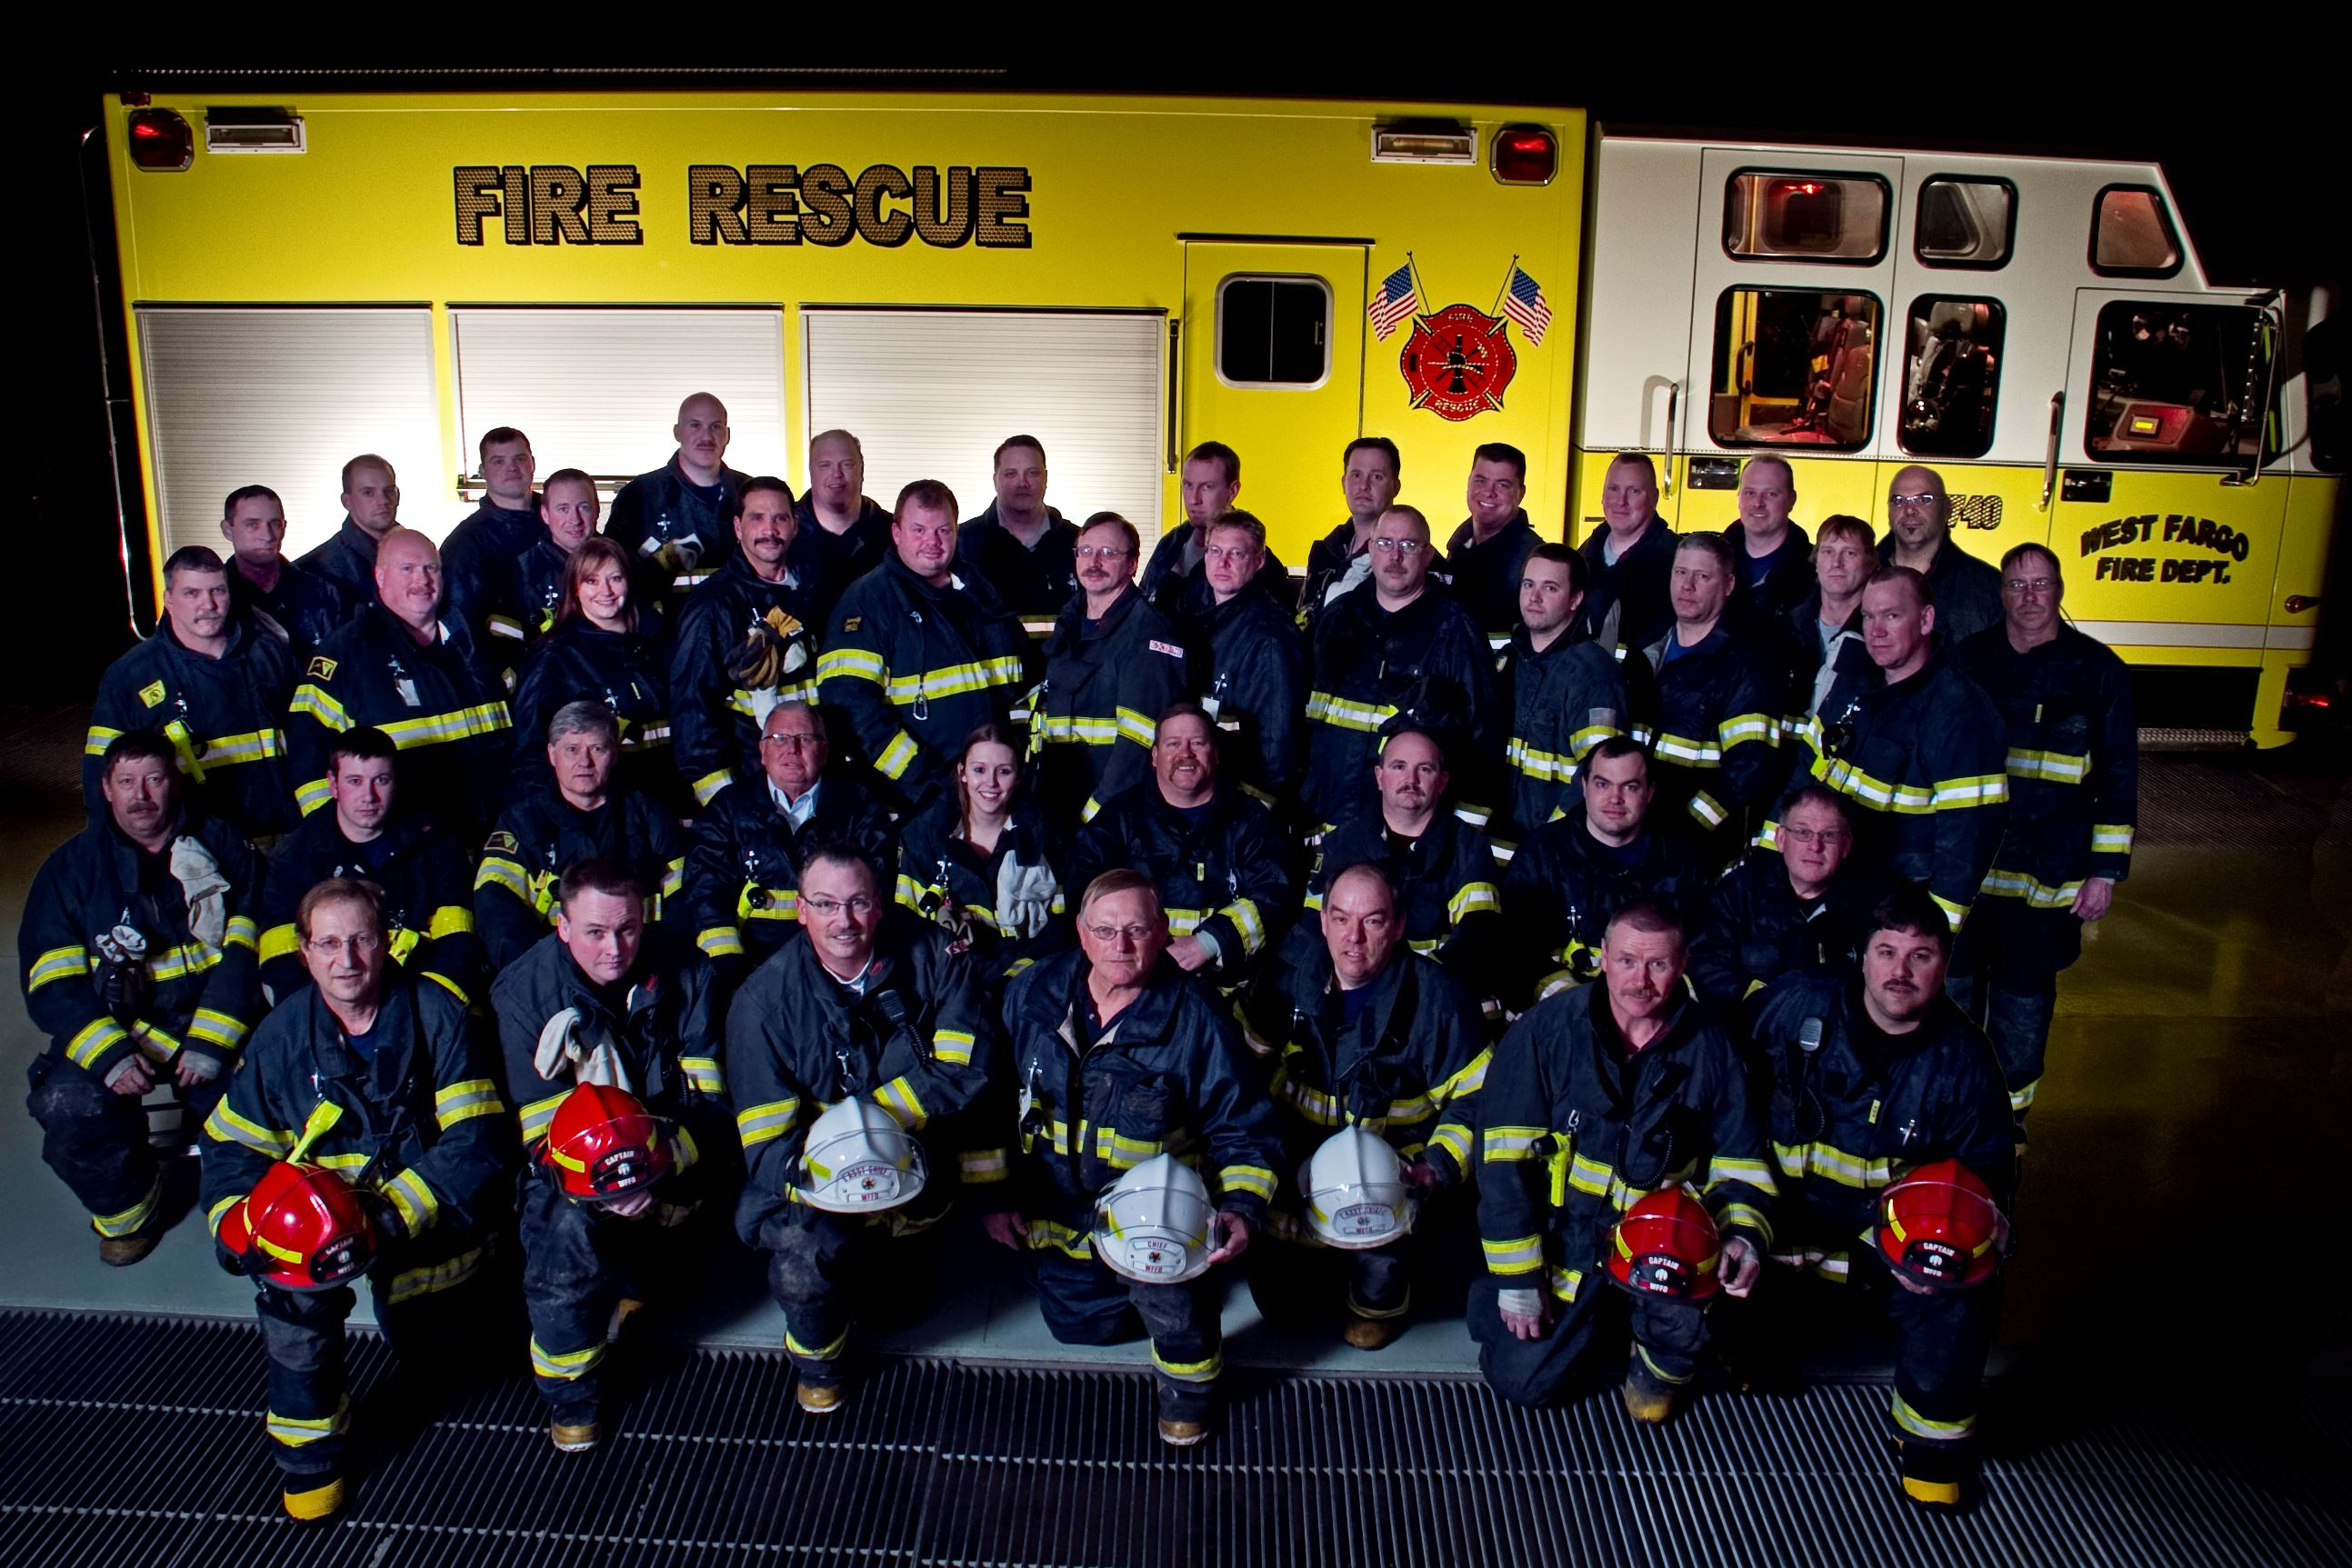 Fire Department Group Photo 2010